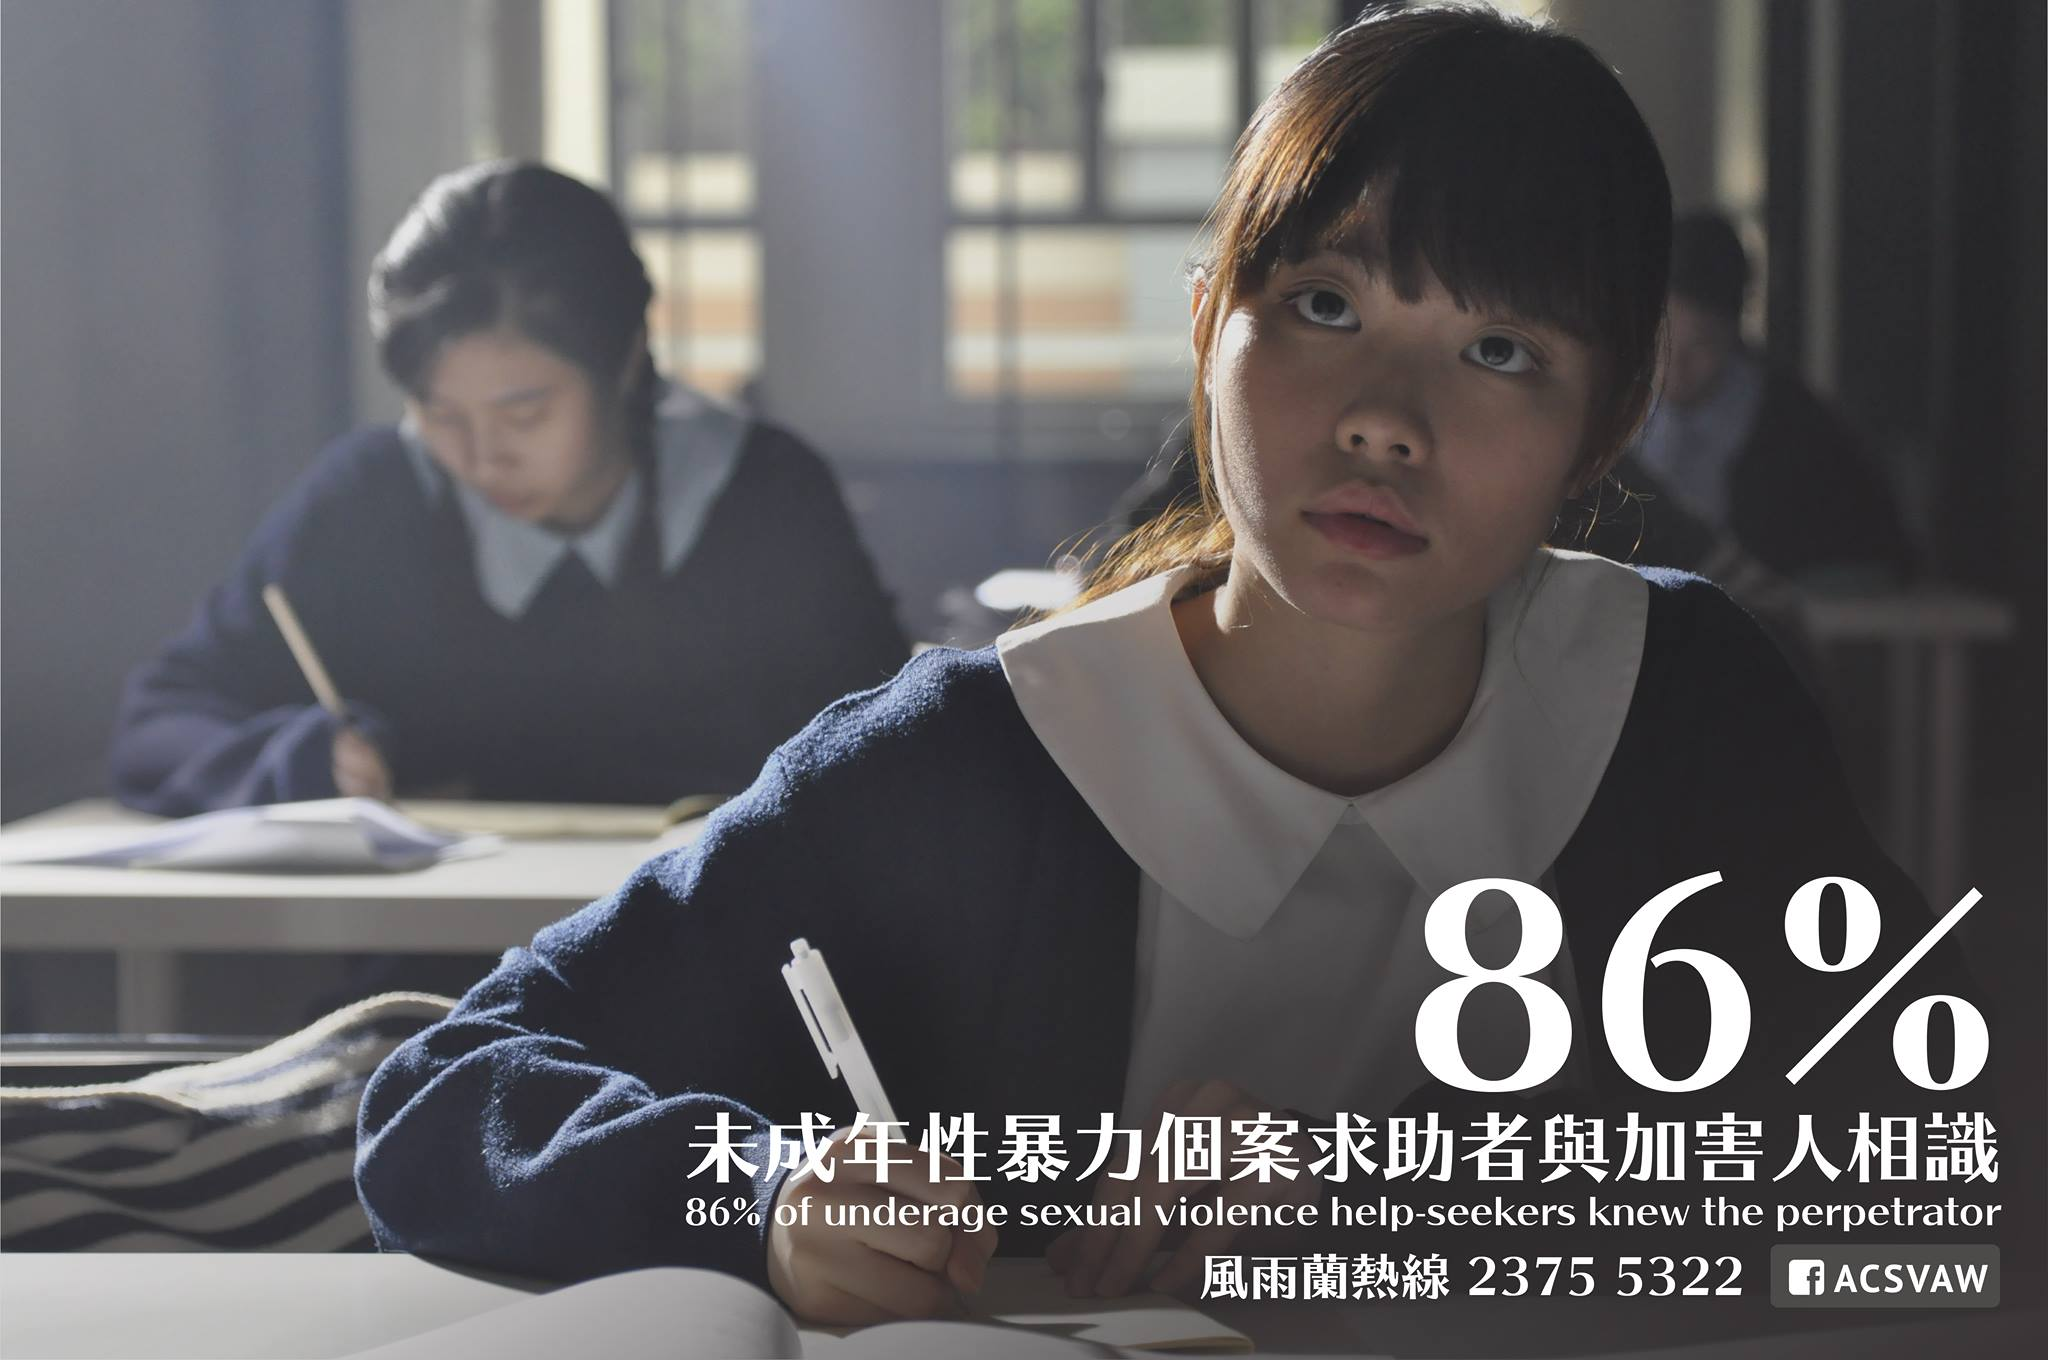 """""""Sexually assaulted by her respected teacher during high school. Live onward as if nothing had happened."""" - The first story in the 'RainLily X Best Actress' video.  Analysis of underage sexual violence cases from RainLily has shown that 86% of help-seekers knew the perpetrator. Only 7.5% of cases sought help immediately, underage victims received help after 7 years in average.  To work against underage sexual abuse, we have to be better aware of possible characteristics of sexual abuse cases against children. Introducing gender equity into education is also essential on informing adolescents and children about body boundaries and mutual respect."""